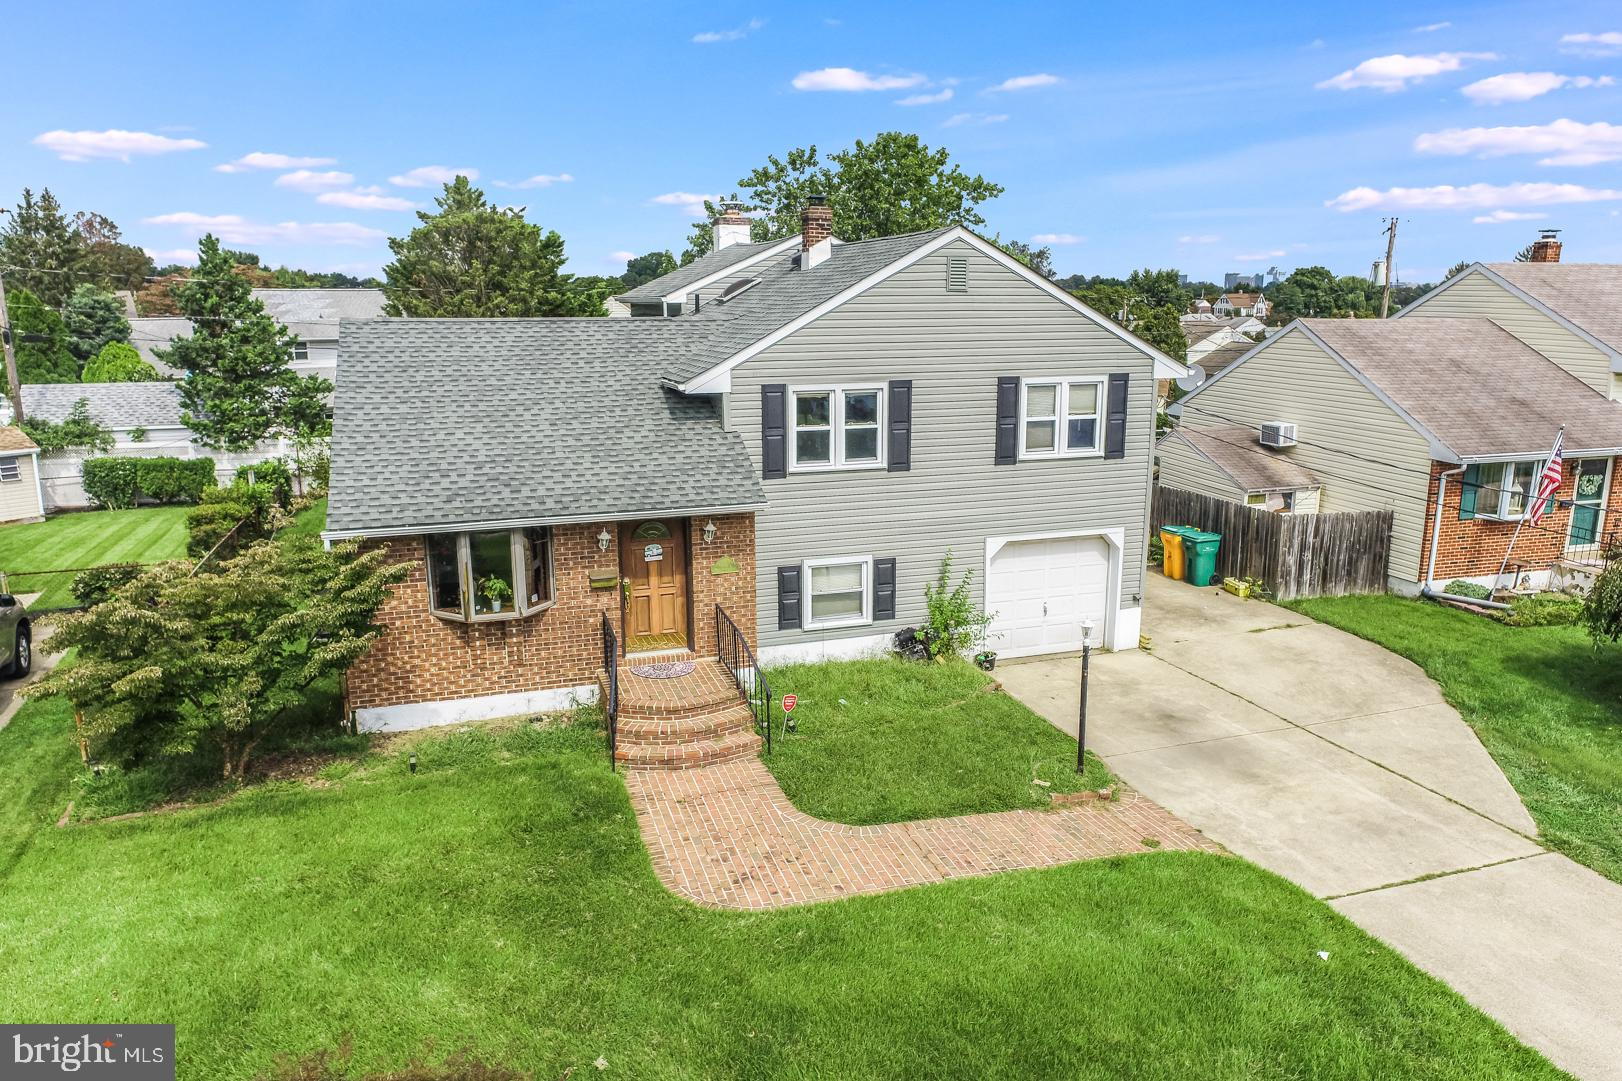 Not your ordinary home on Middleboro. This home has a HUGE addition with allows for a XL kitchen and family room. Home also has 3 bedrooms and one bath on the second  floor, and a seperate Main Bedroom with full ensuite bath.  Home was fully renovated in 2018. Come check out this Gem, It won't last long.